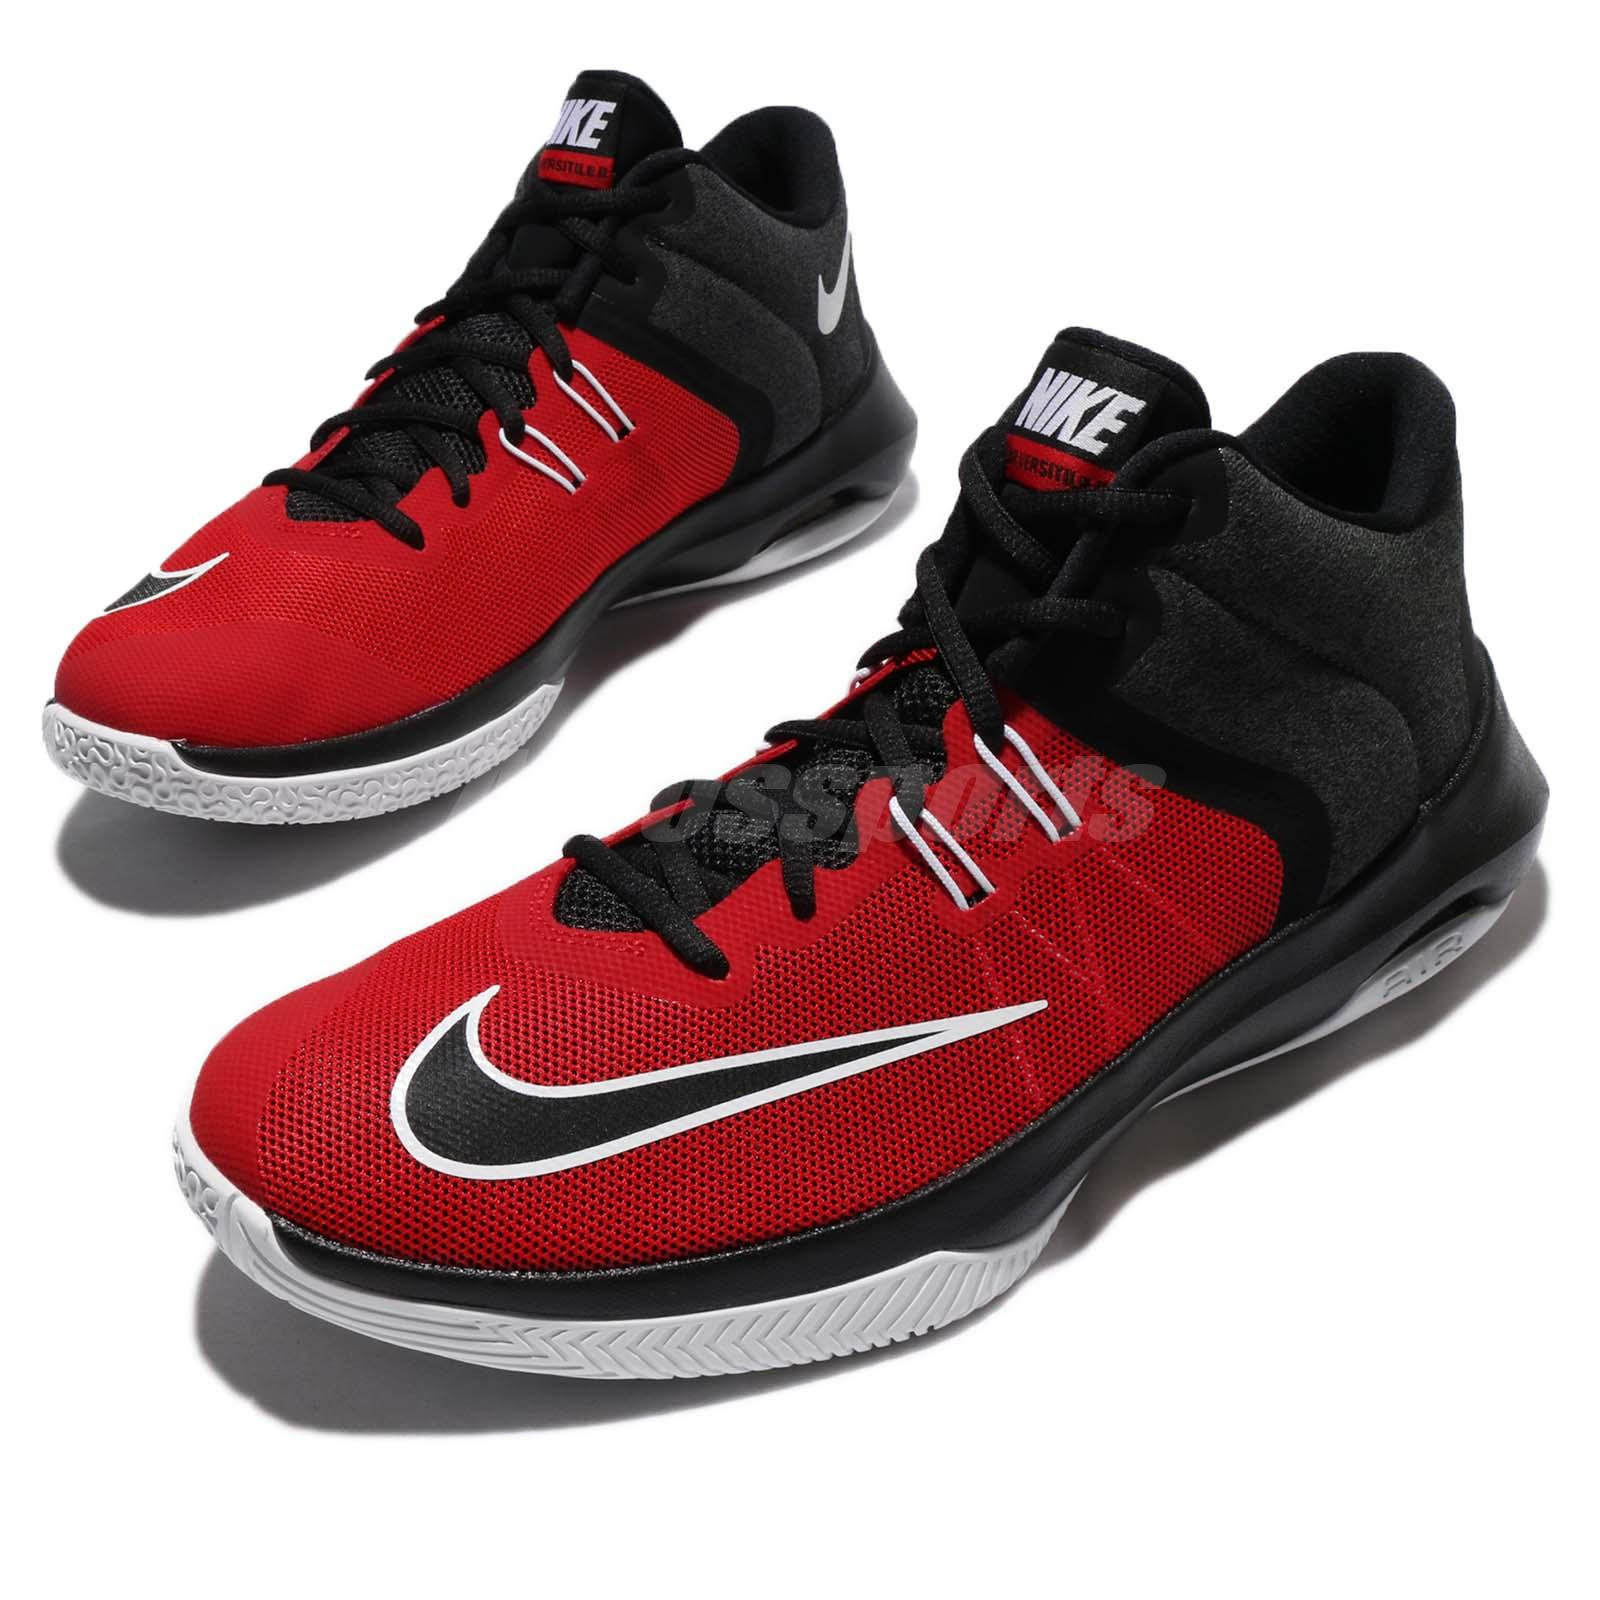 Nike Air Versitile Men S Basketball Shoes Amazon